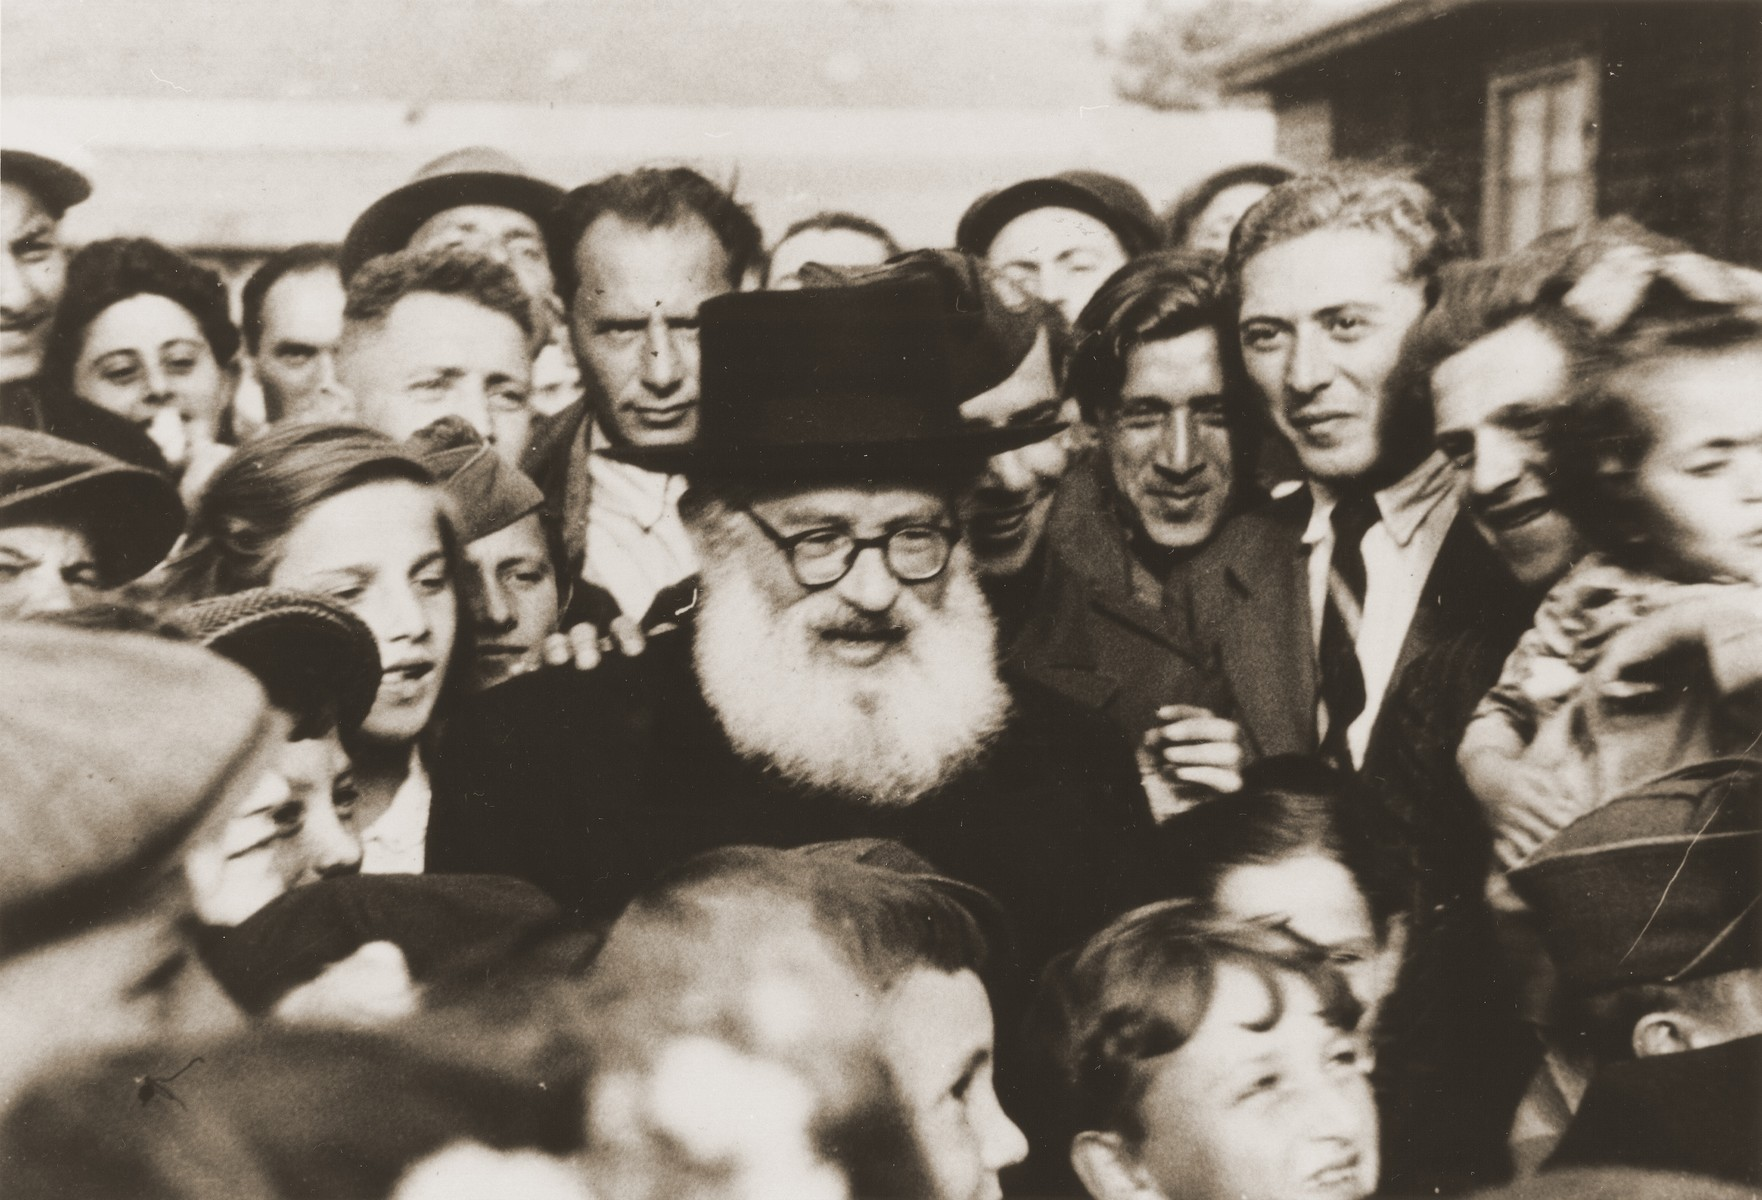 Rabbi Isaac Herzog, Ashkenazi chief rabbi of Palestine, addresses a crowd during an official visit to one of the displaced persons camps.